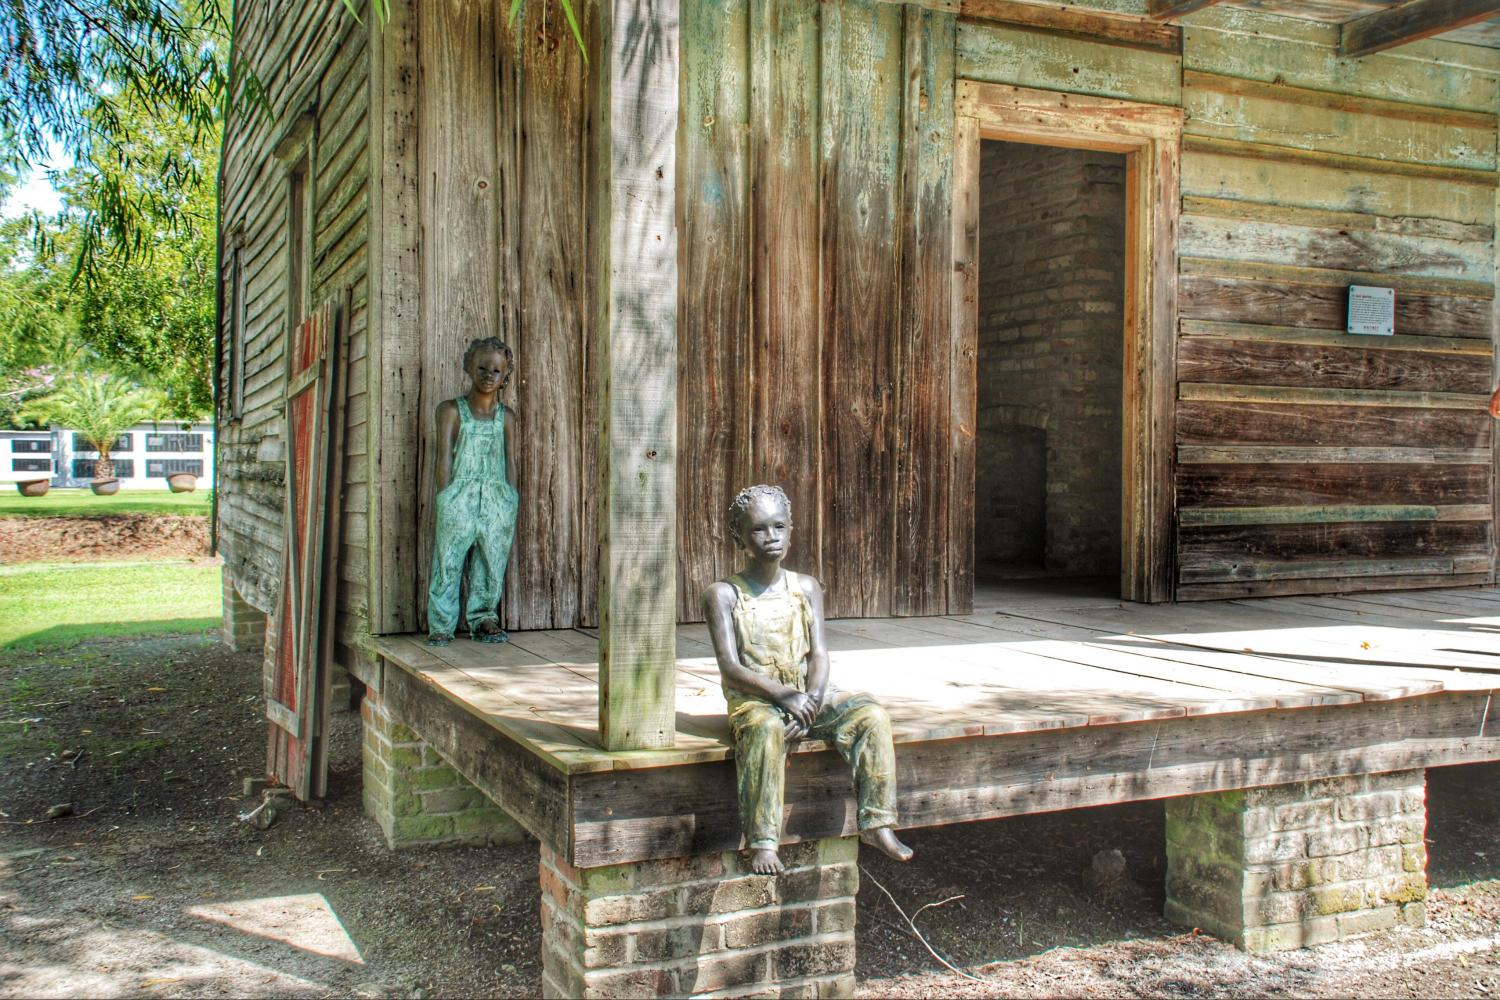 whitney plantation tour, whitney plantation tours